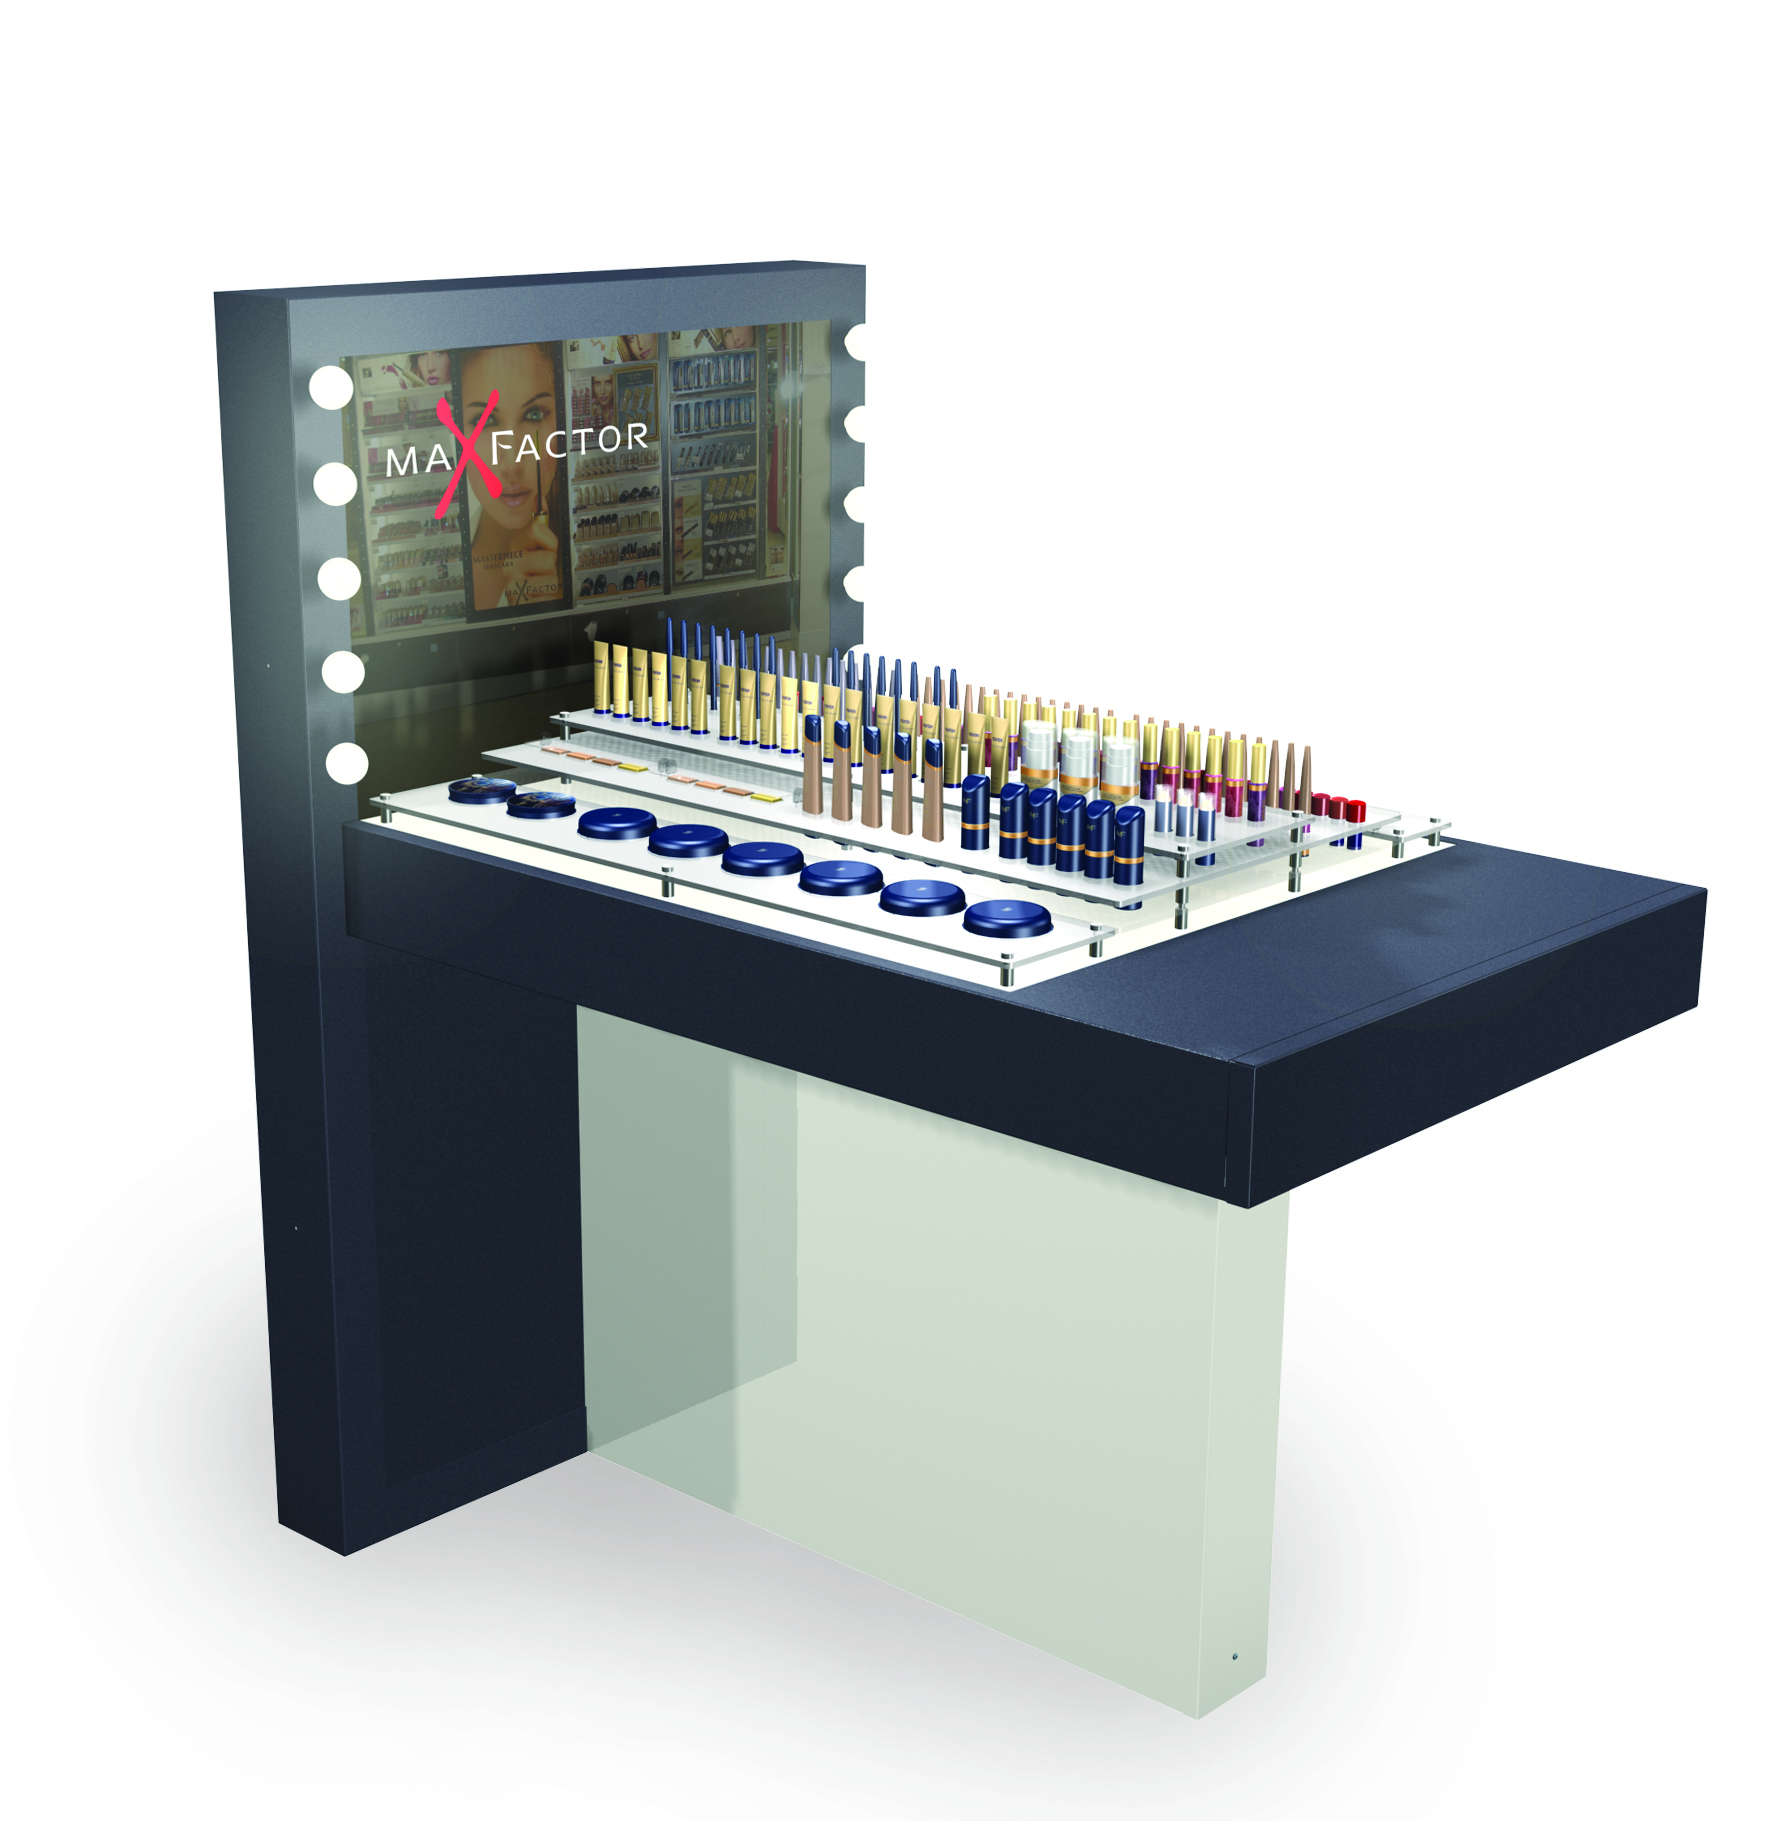 Maxfactor tester table